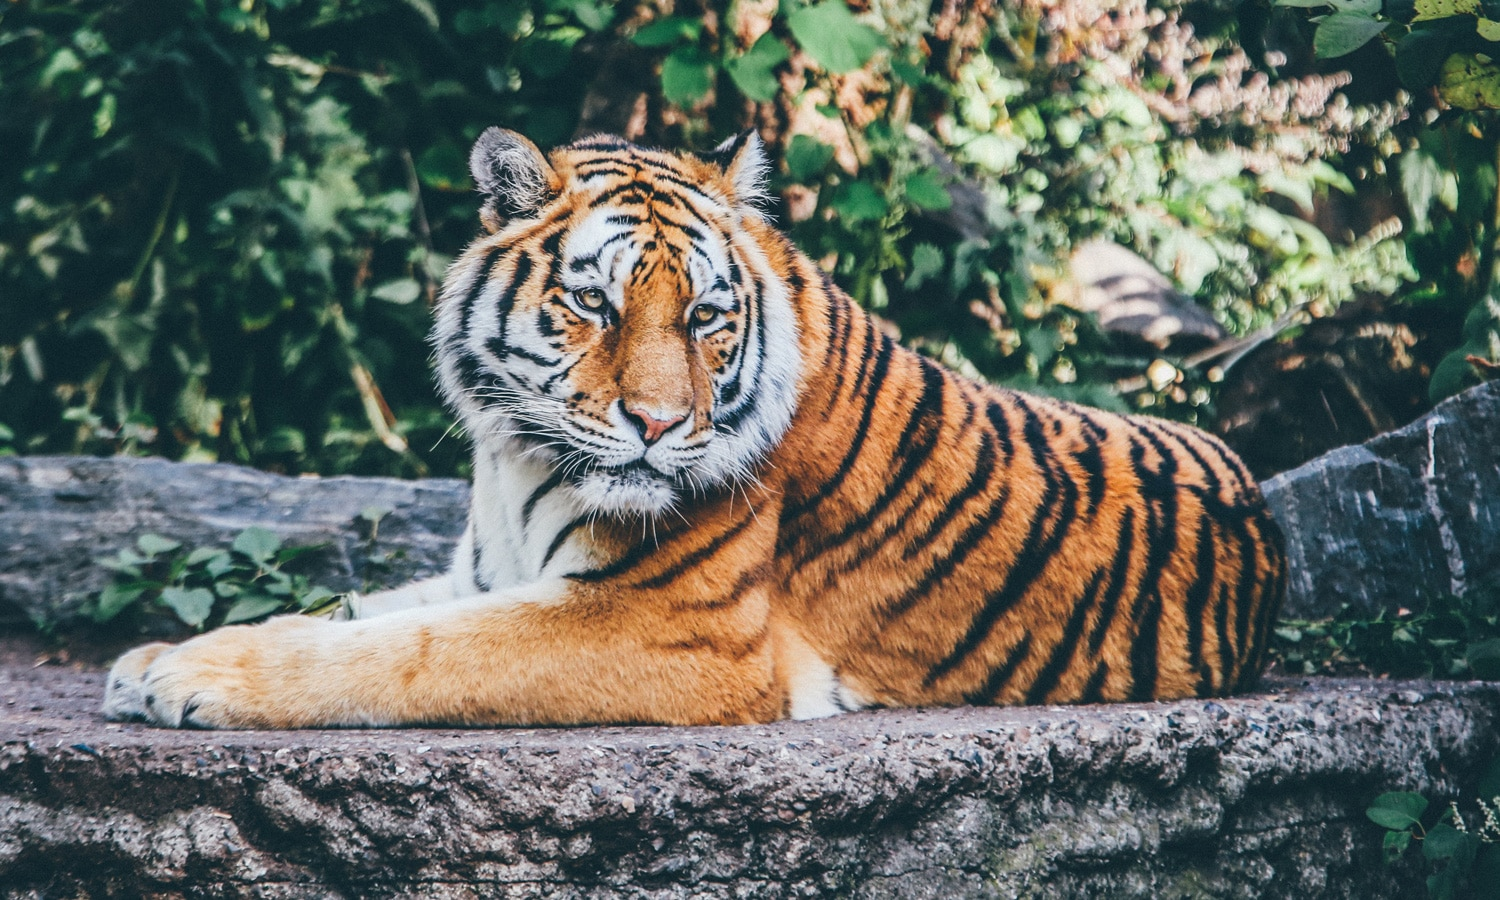 Tiger King and Marijuana Are Linked In More Ways Than One